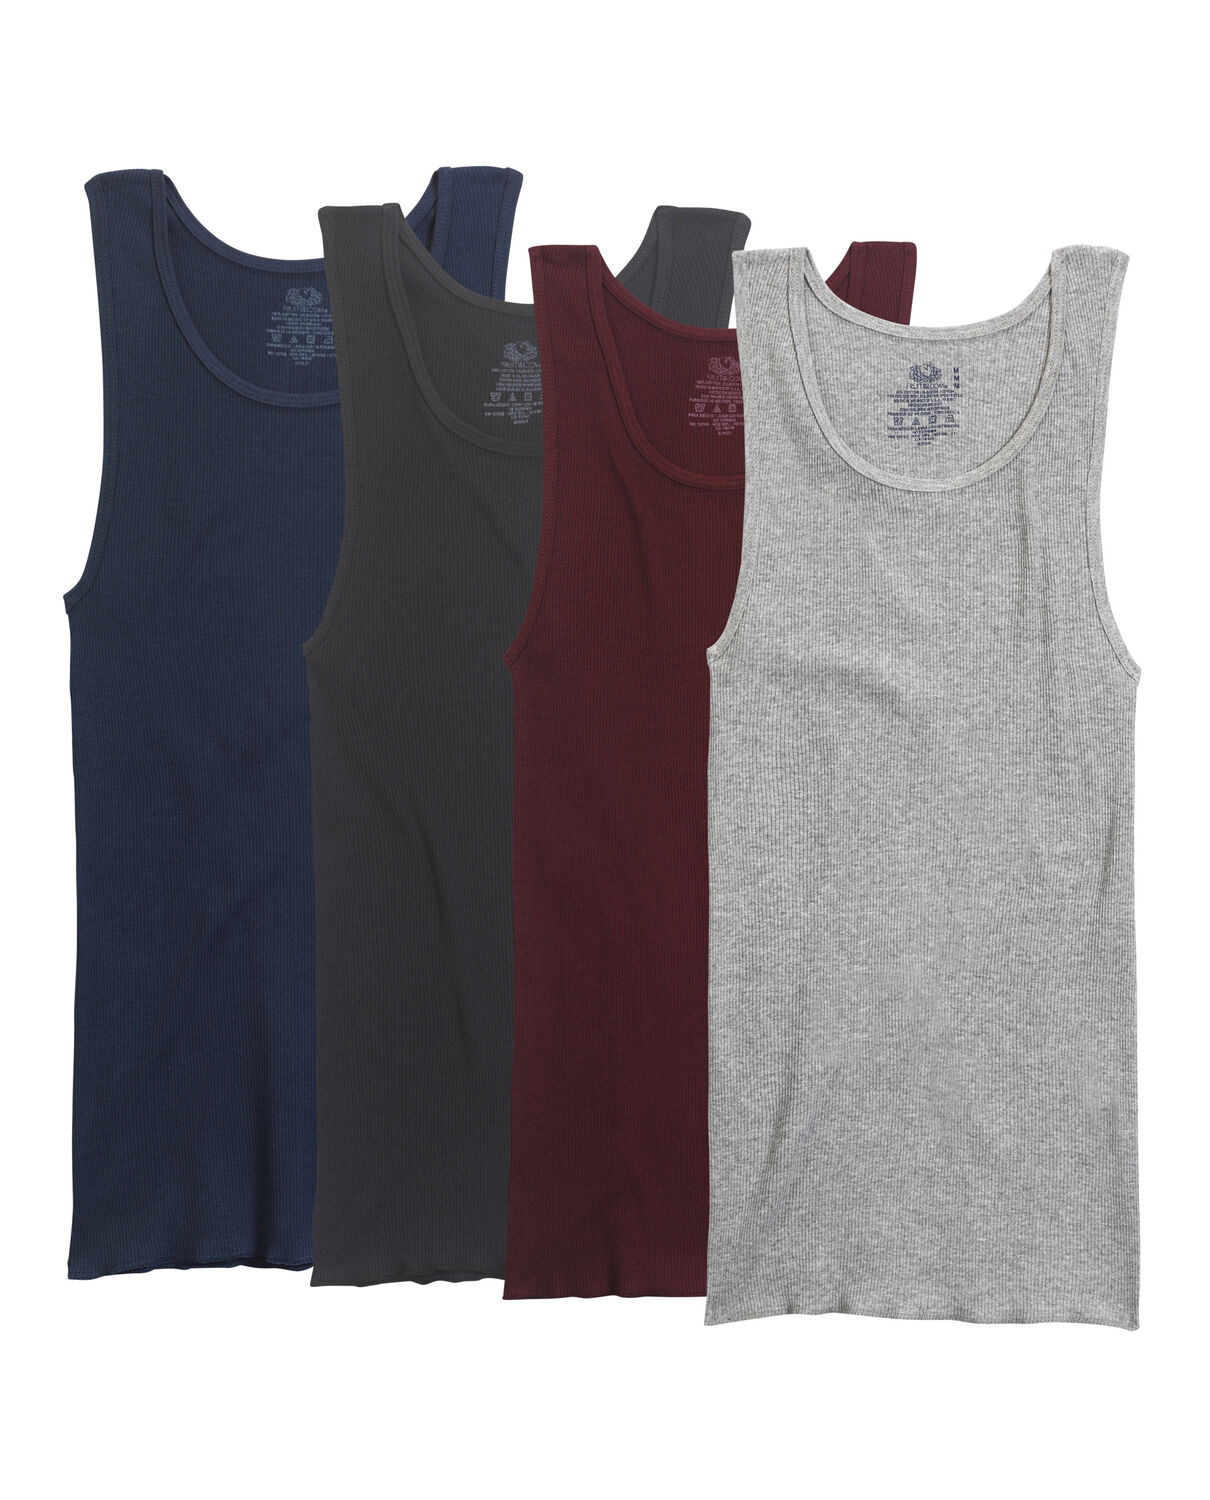 Men S 4 Pack Assorted A Shirt Extended Sizes Fruit Us